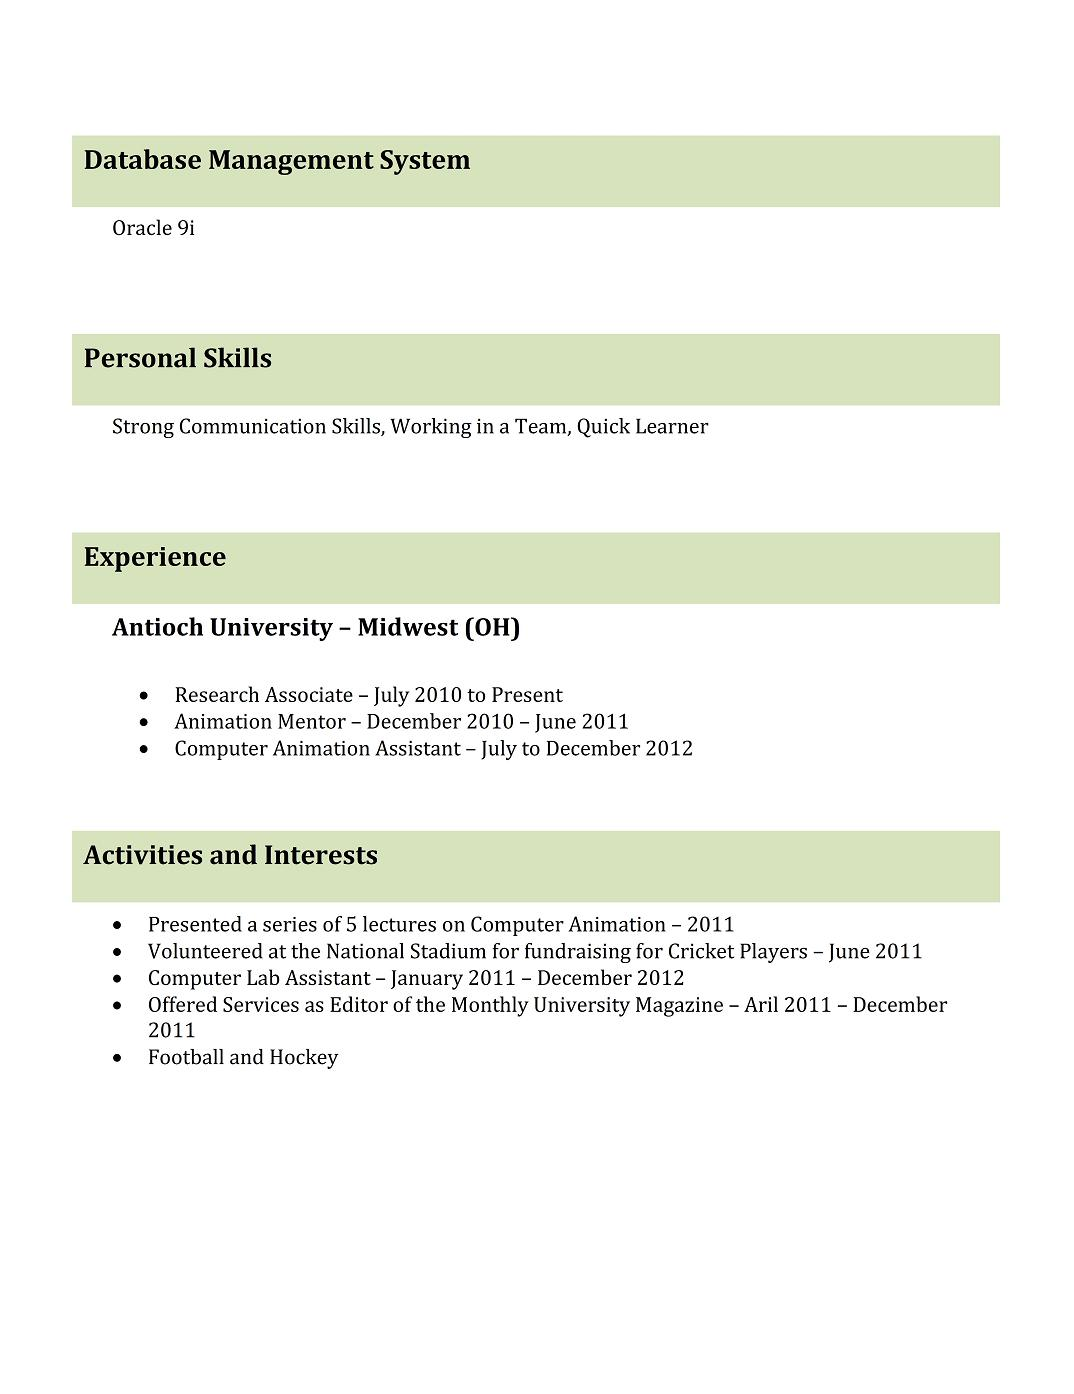 freshers resume format 2016 best professional resume templates select from great fonts including calibri and arial and make sure you maintain the size to not less than 10 and 12